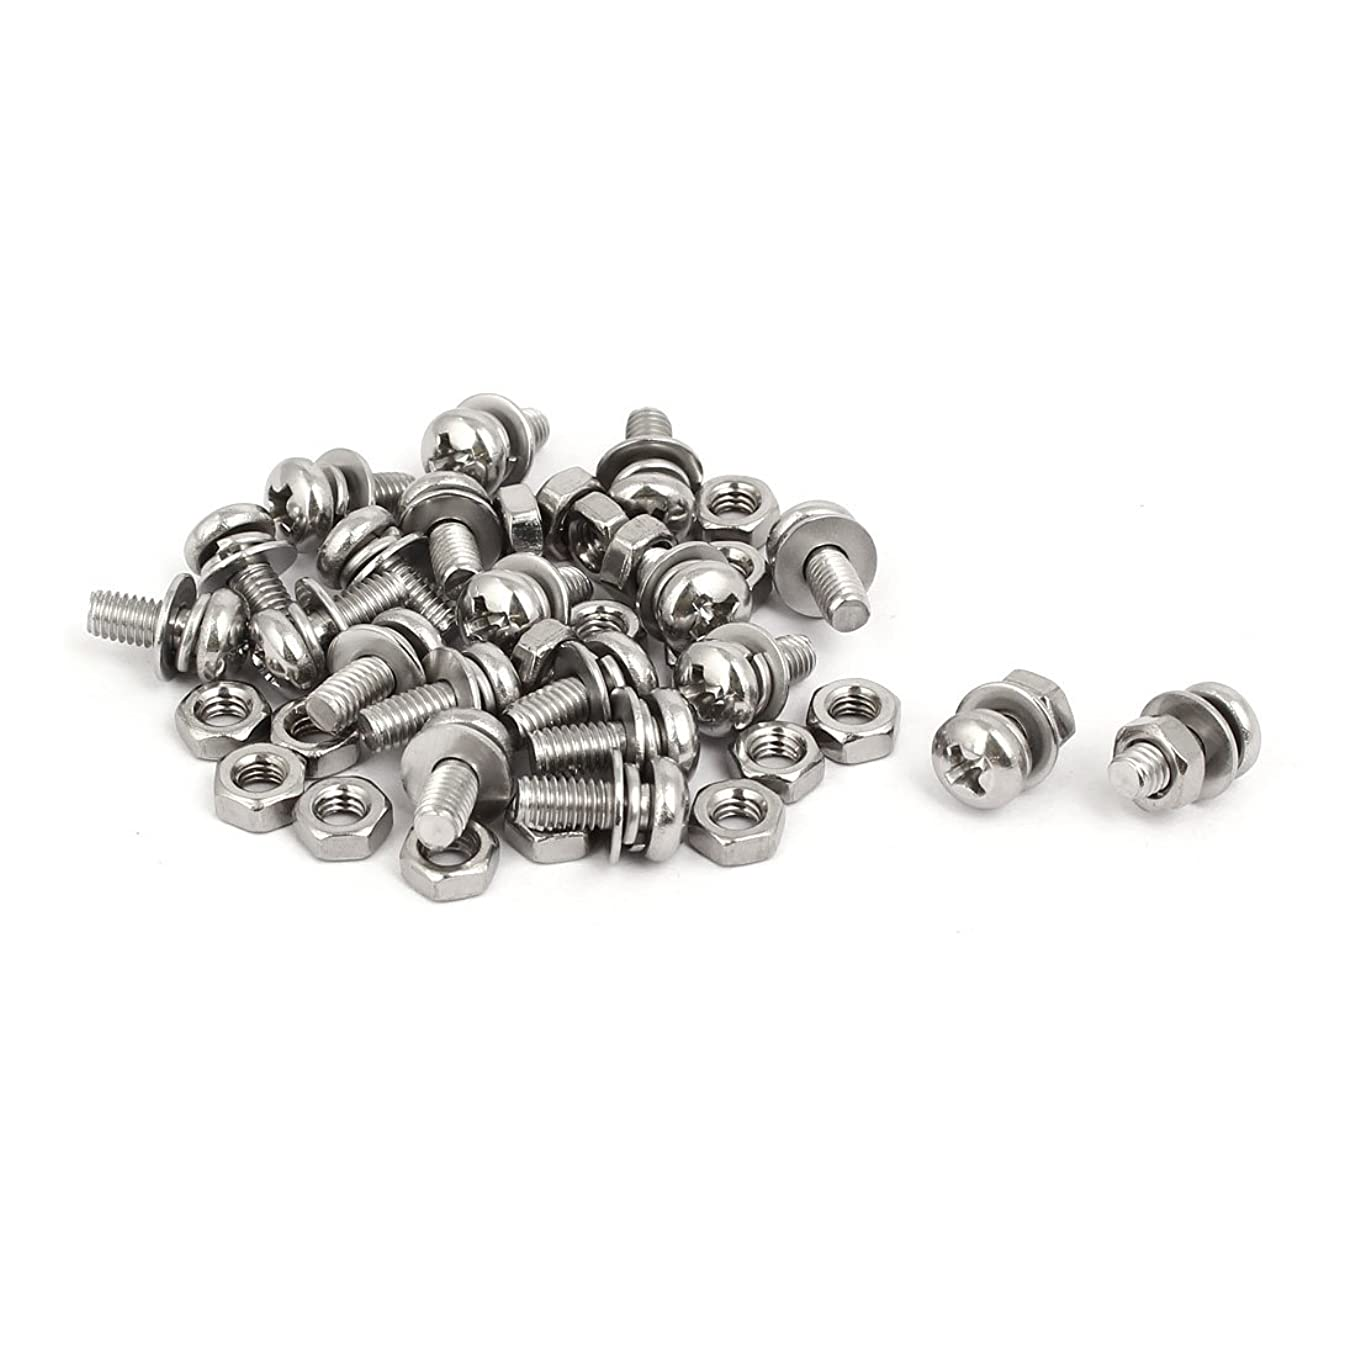 uxcell M4x10mm 304 Stainless Steel Phillips Pan Head Bolt Screw Nut w Washer 20 Sets yz16879258281360